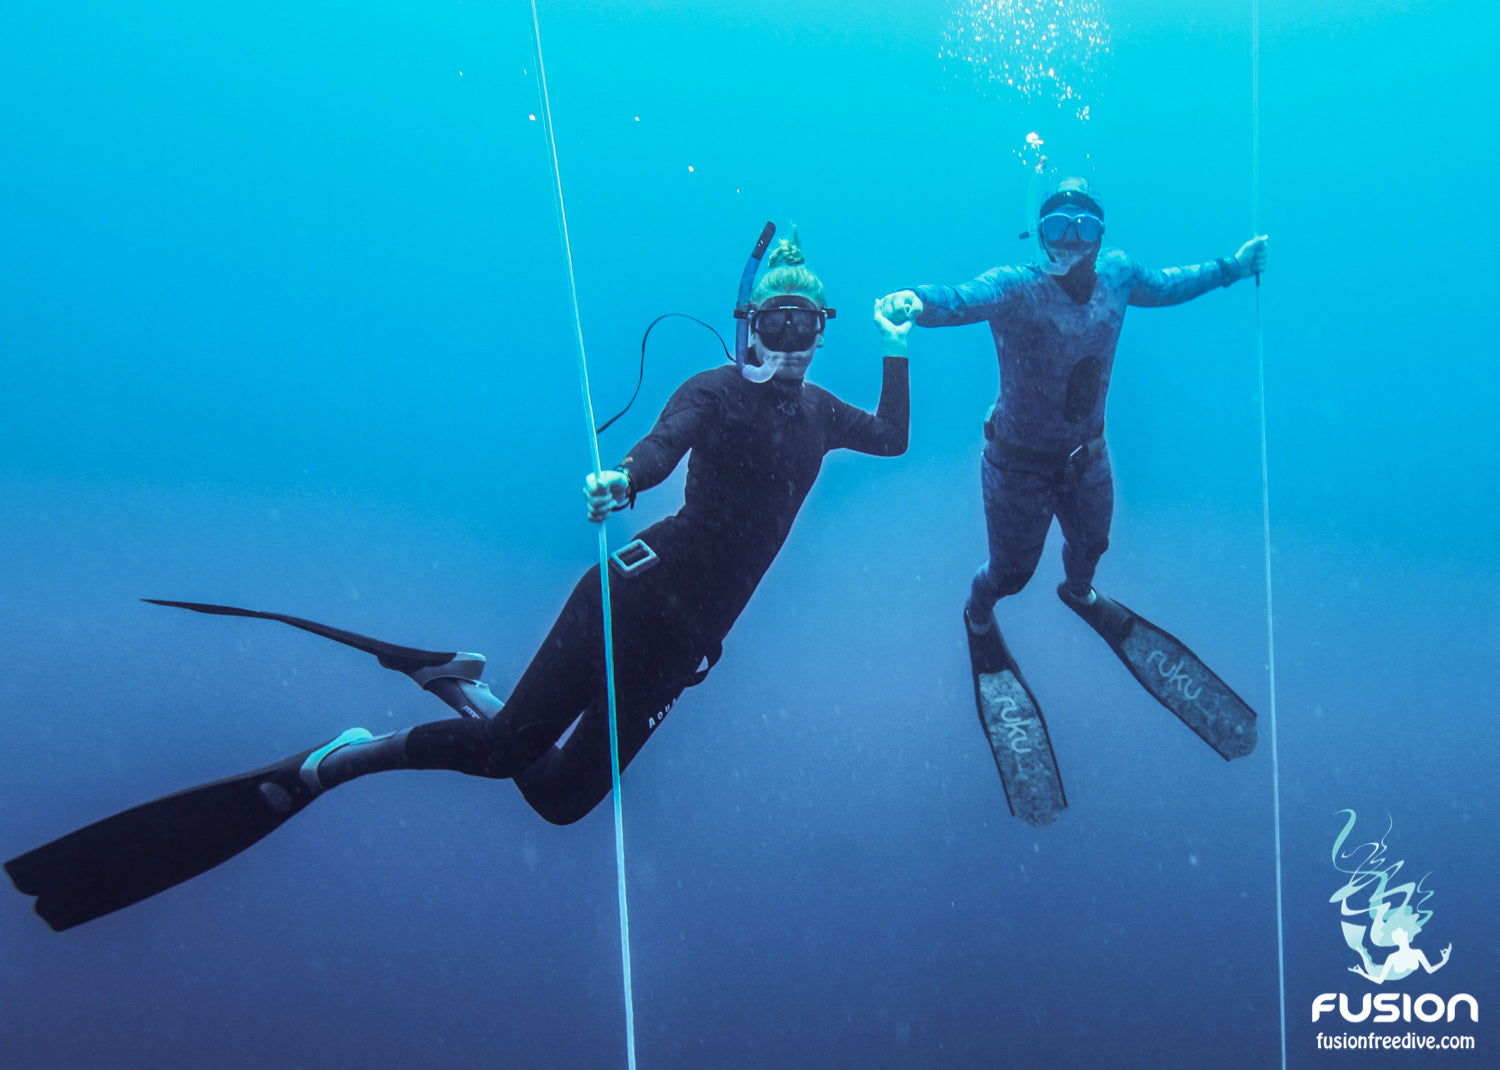 Level 2 Freedive Course - Fusion Freedive and Spearfishing